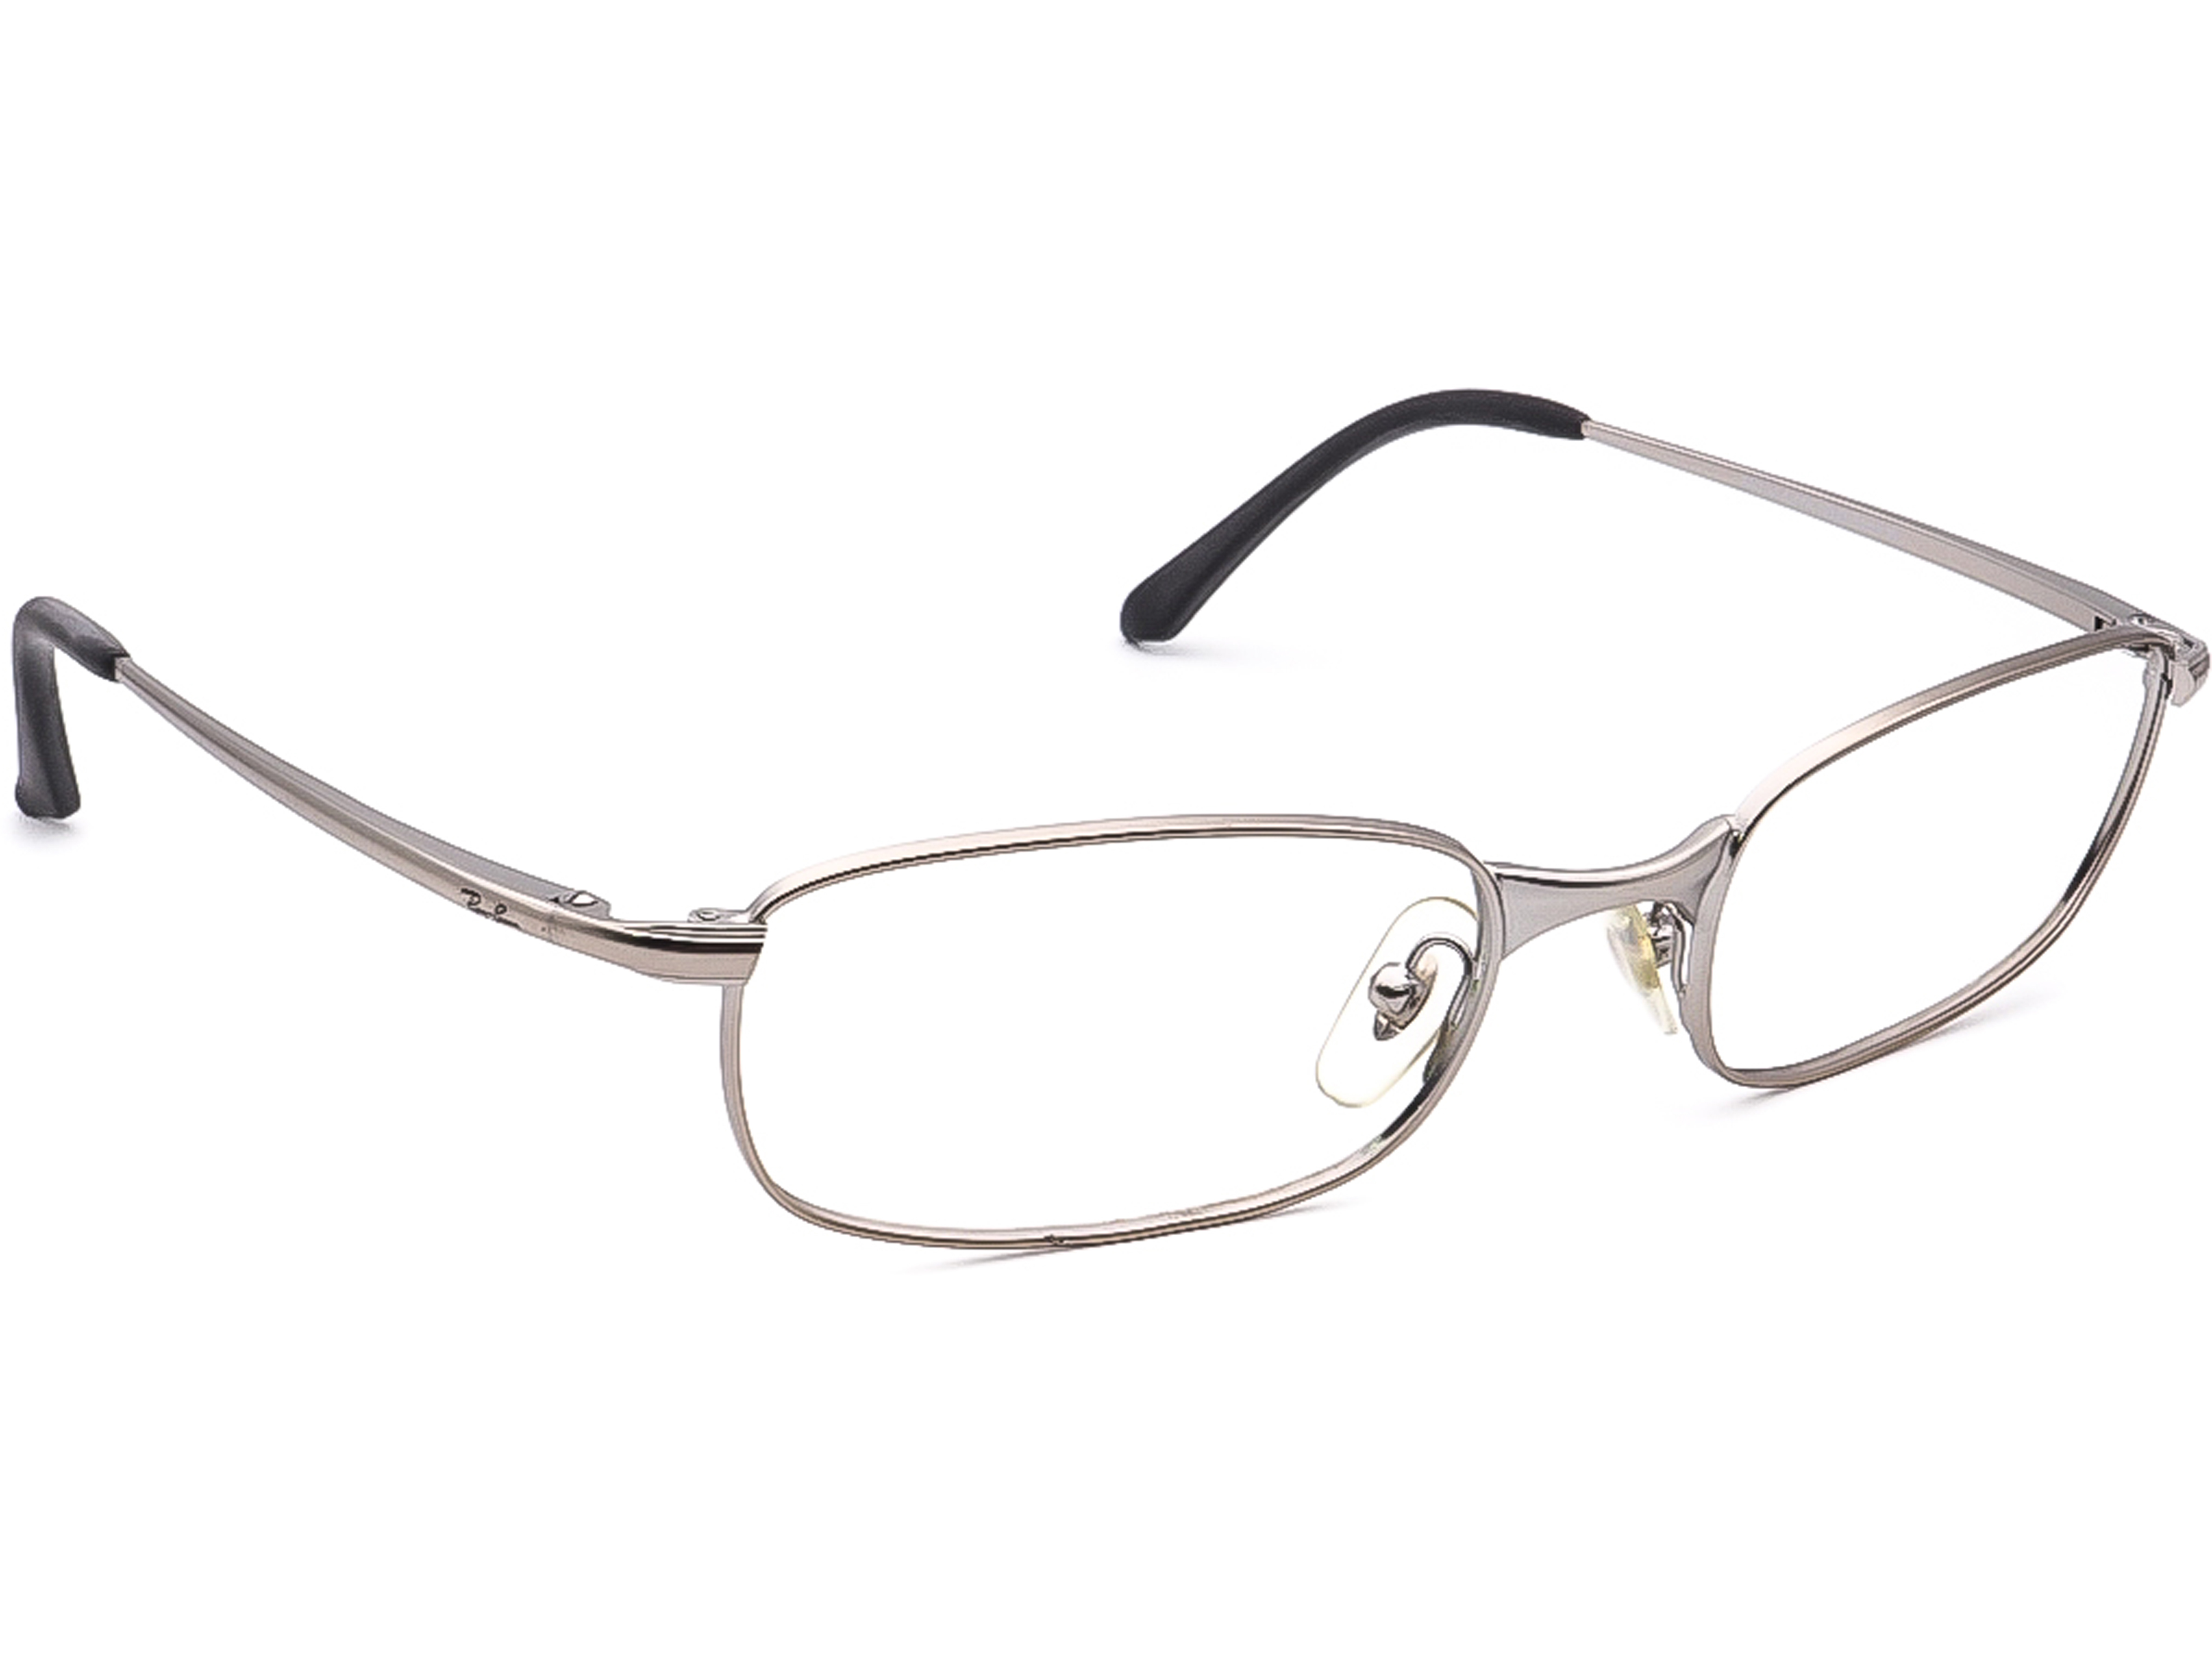 Ray Ban RB 3162 Sleek 005/40 Sunglasses Frame Only